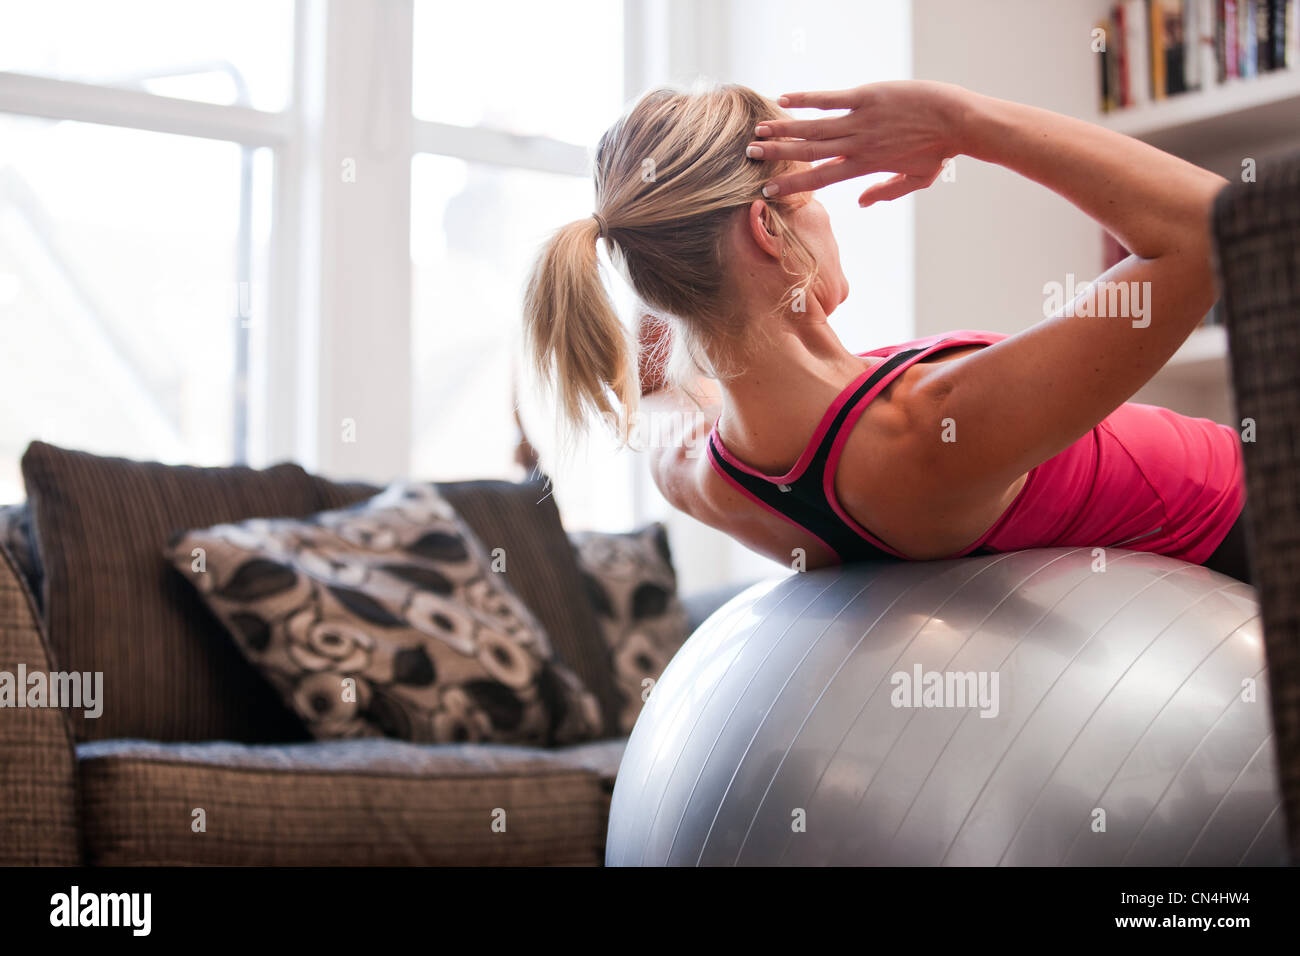 Mid adult woman performing sit ups on exercise ball at home - Stock Image